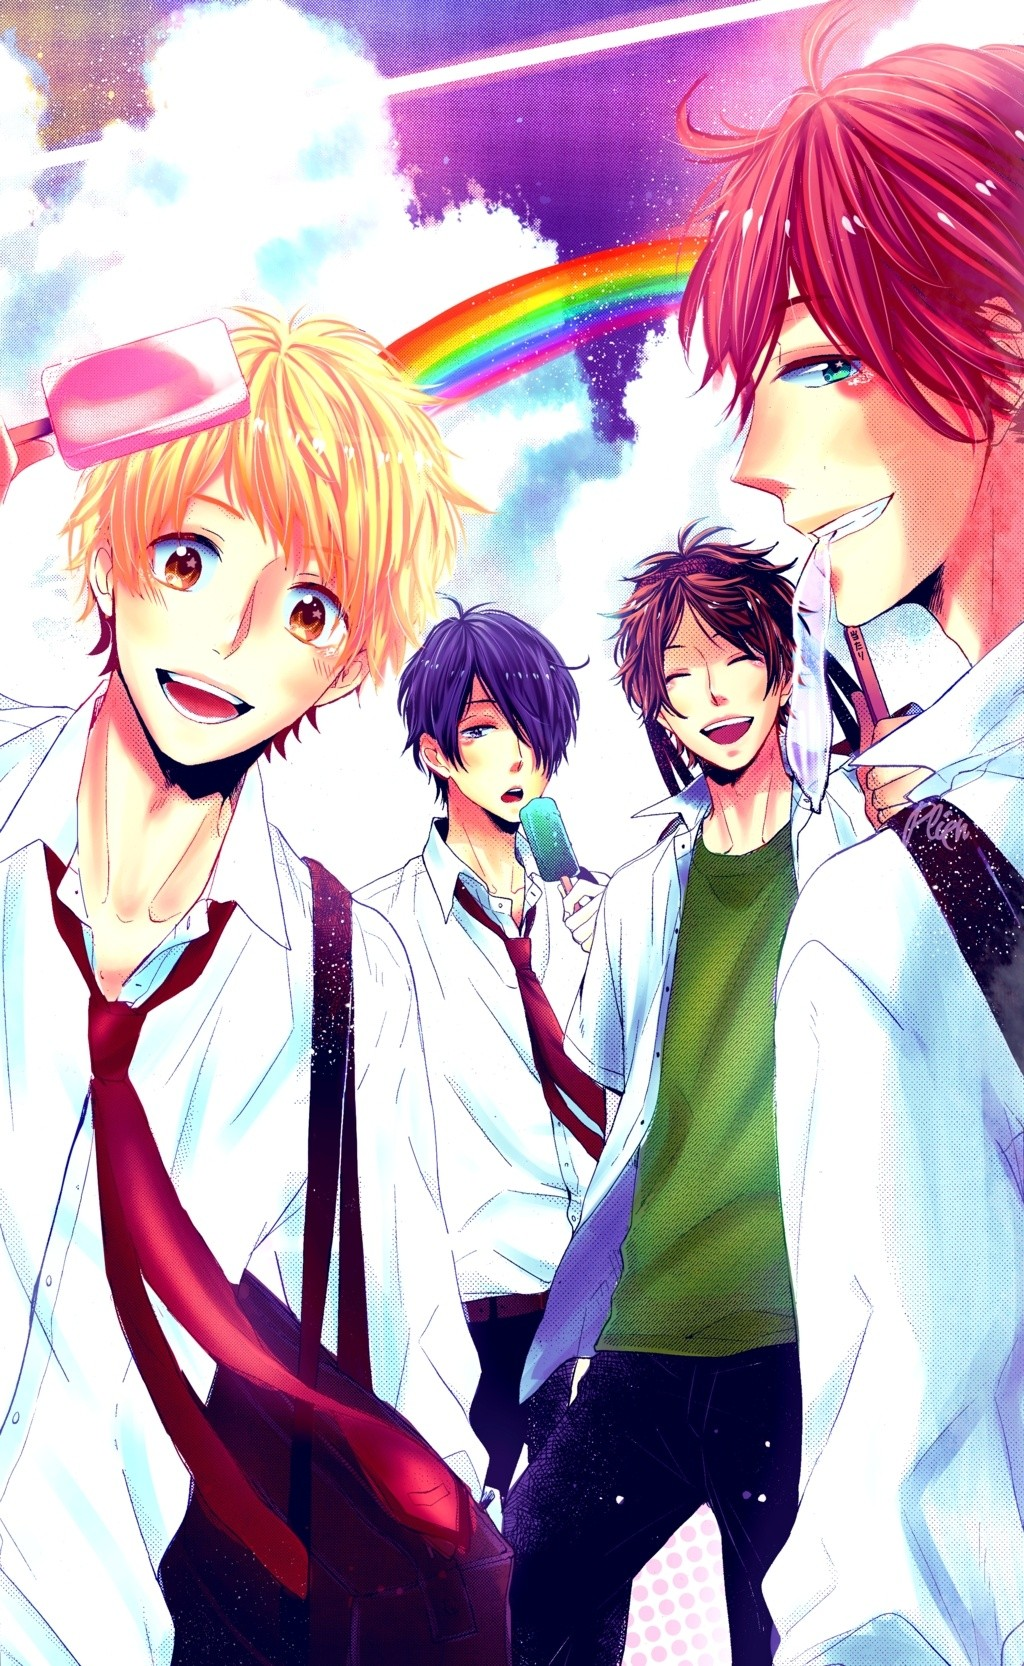 Nijiiro Days Manga, a shoujo romance manga starring Guys